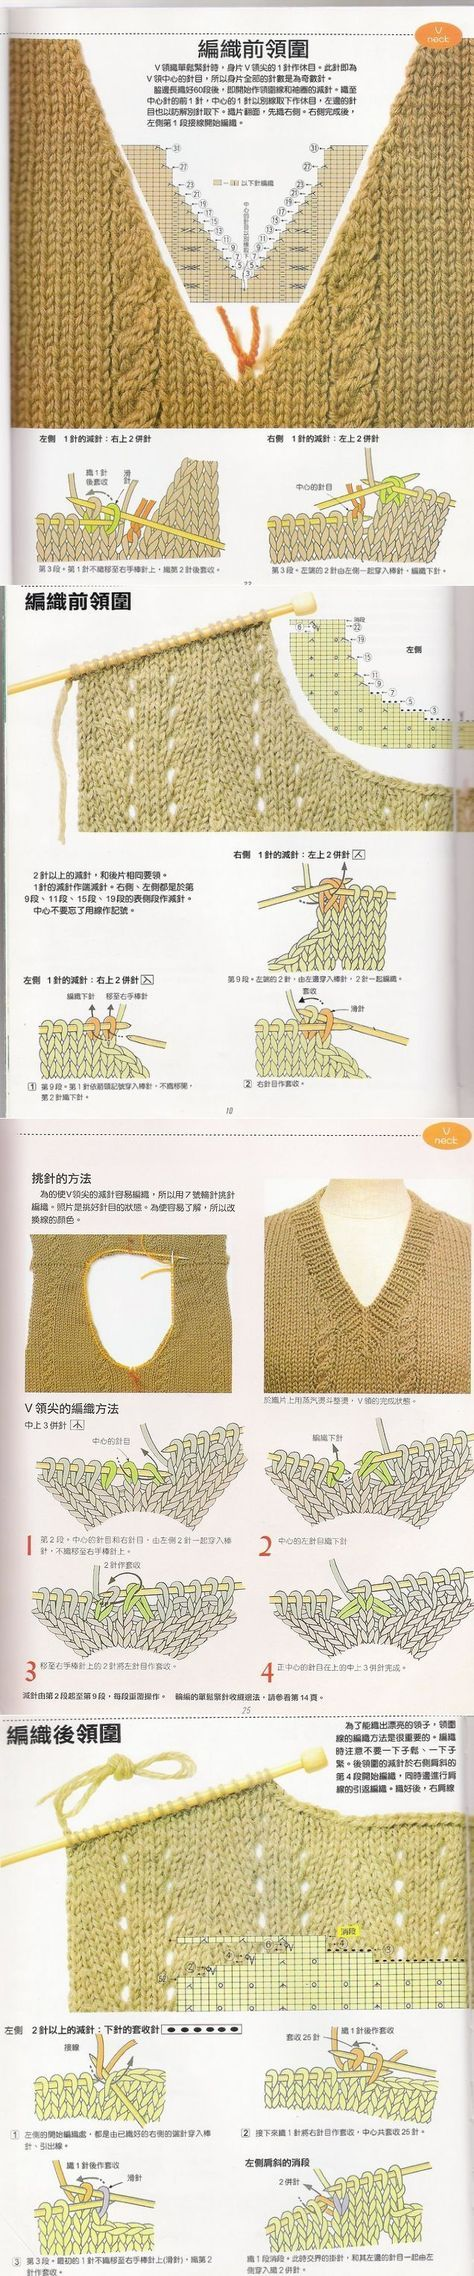 67 best knit images on Pinterest | Knits, Knitting patterns and Baby ...